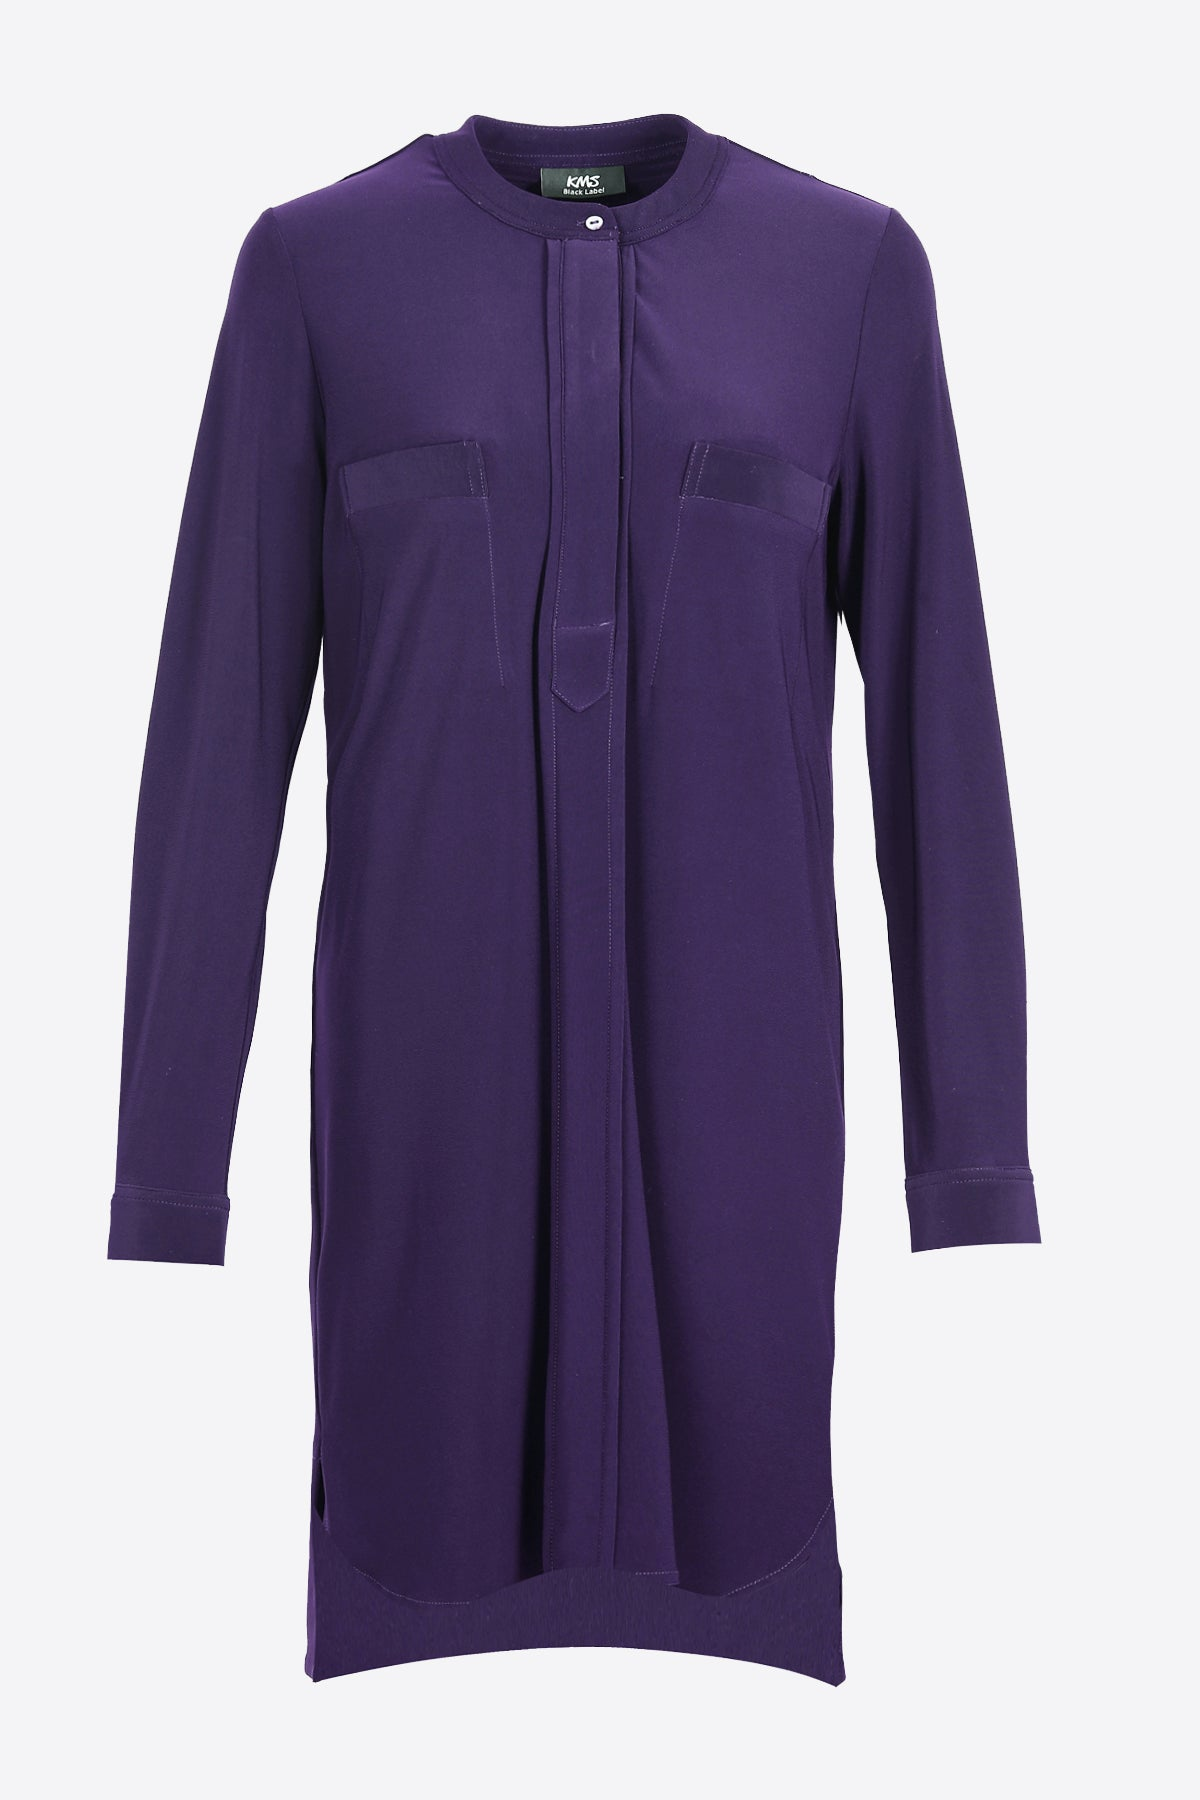 RESORT SHIRT PURPLE